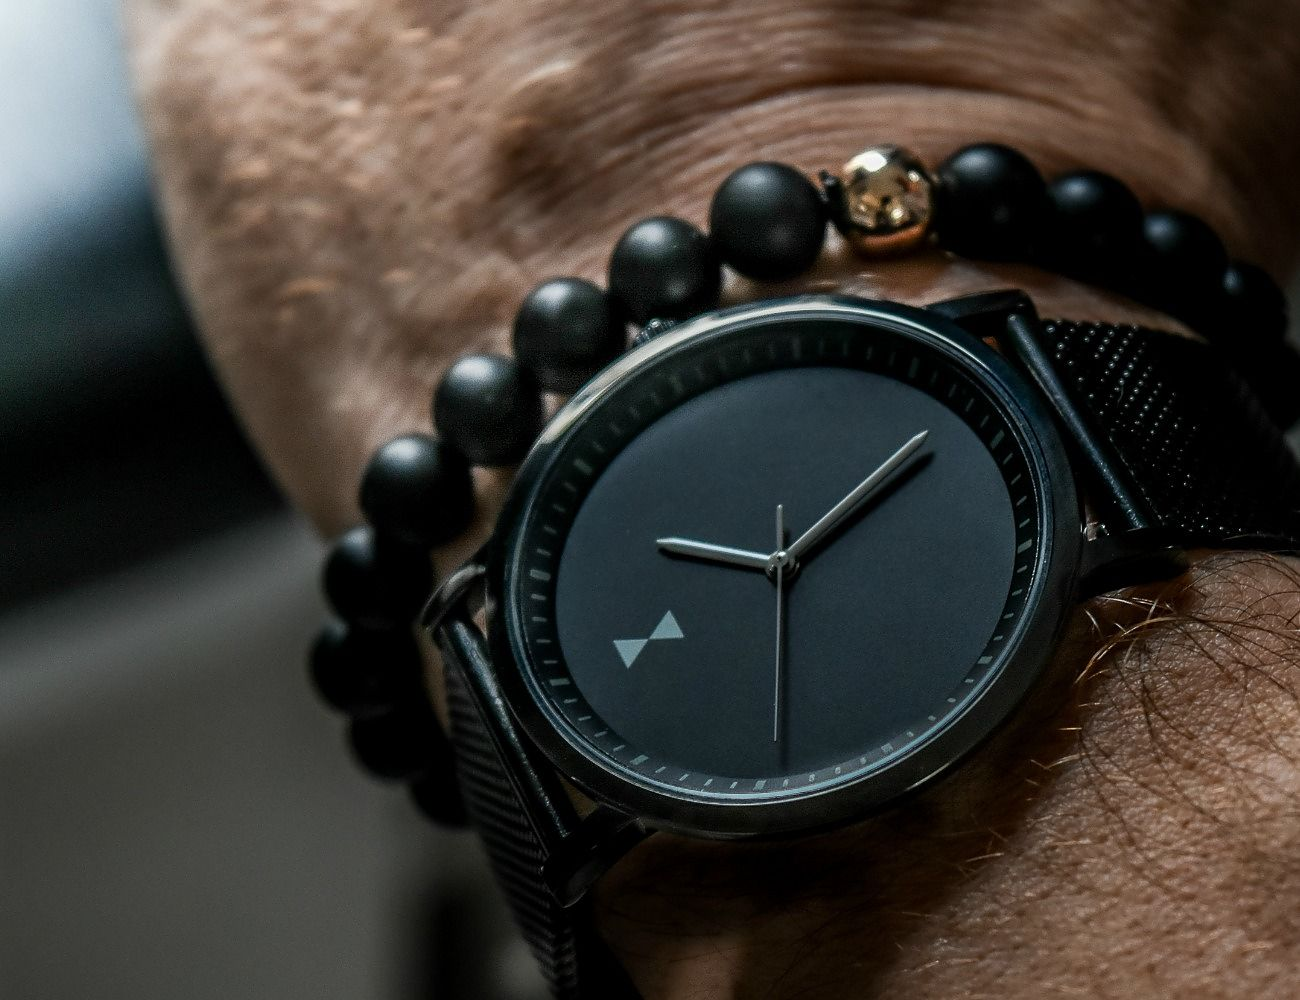 Complement Your Everyday Style With These Unisex Wristwatches